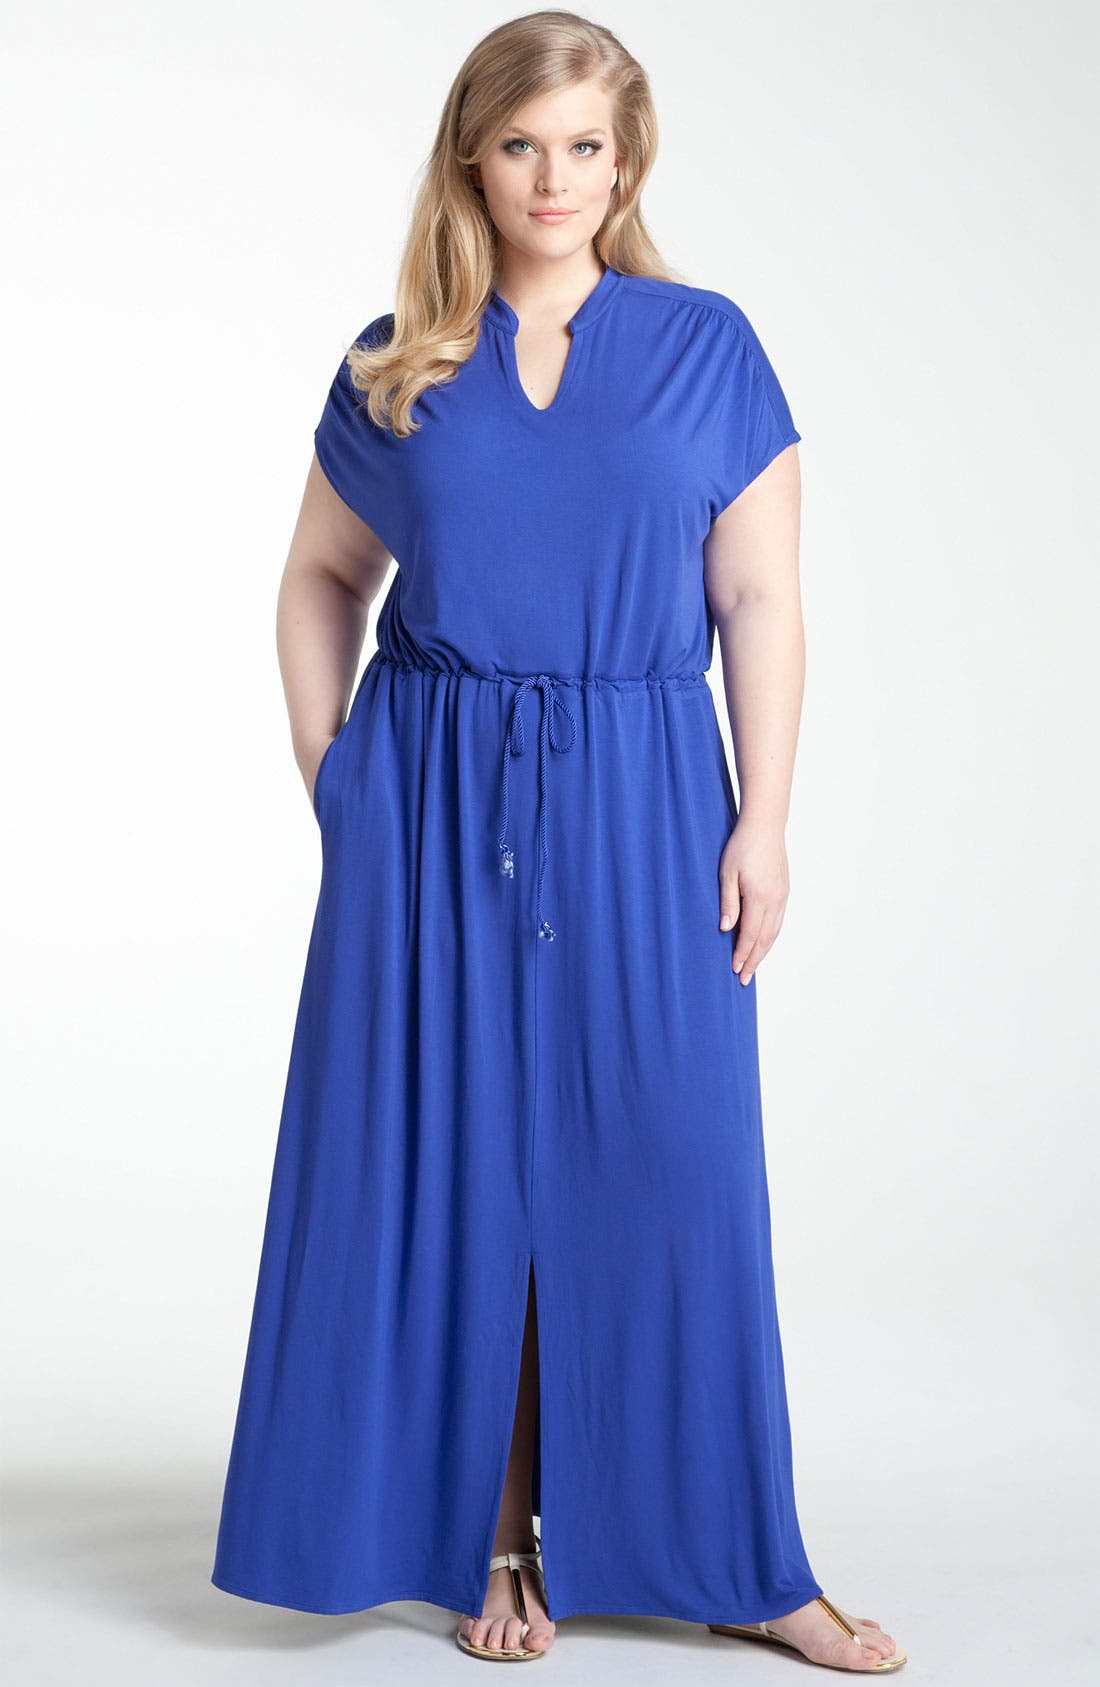 Alternate Image 1 Selected - Sejour Split Neck Knit Maxi Dress (Plus)